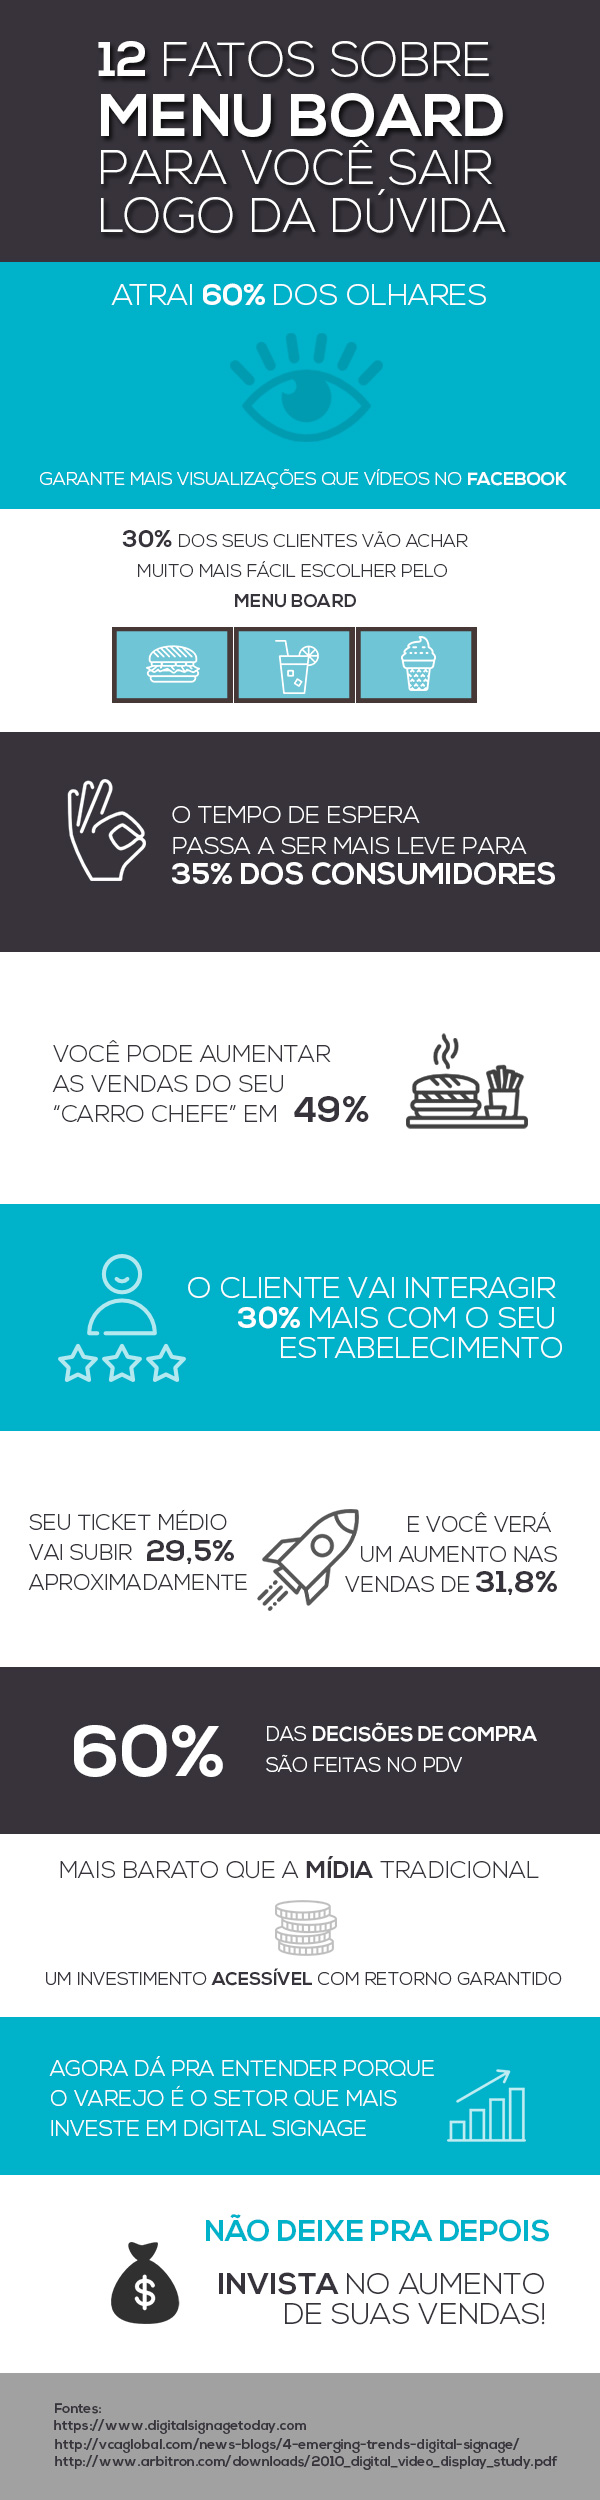 Infográfico com dados do Menu Board Digital